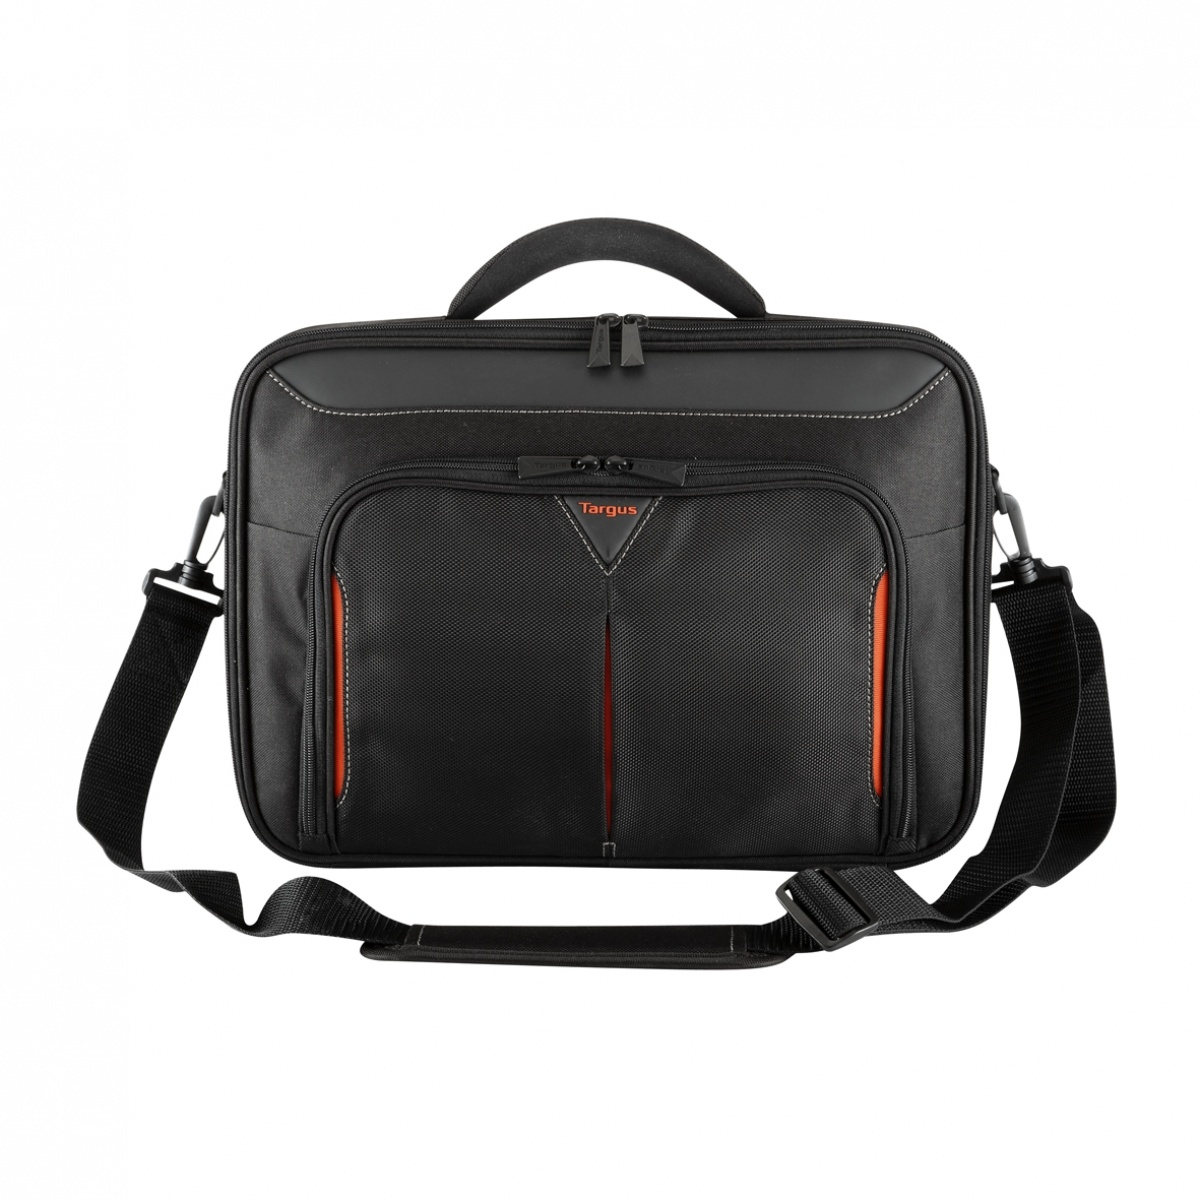 Geanta notebook Classic Clamshell, 15.6 inch, neagra